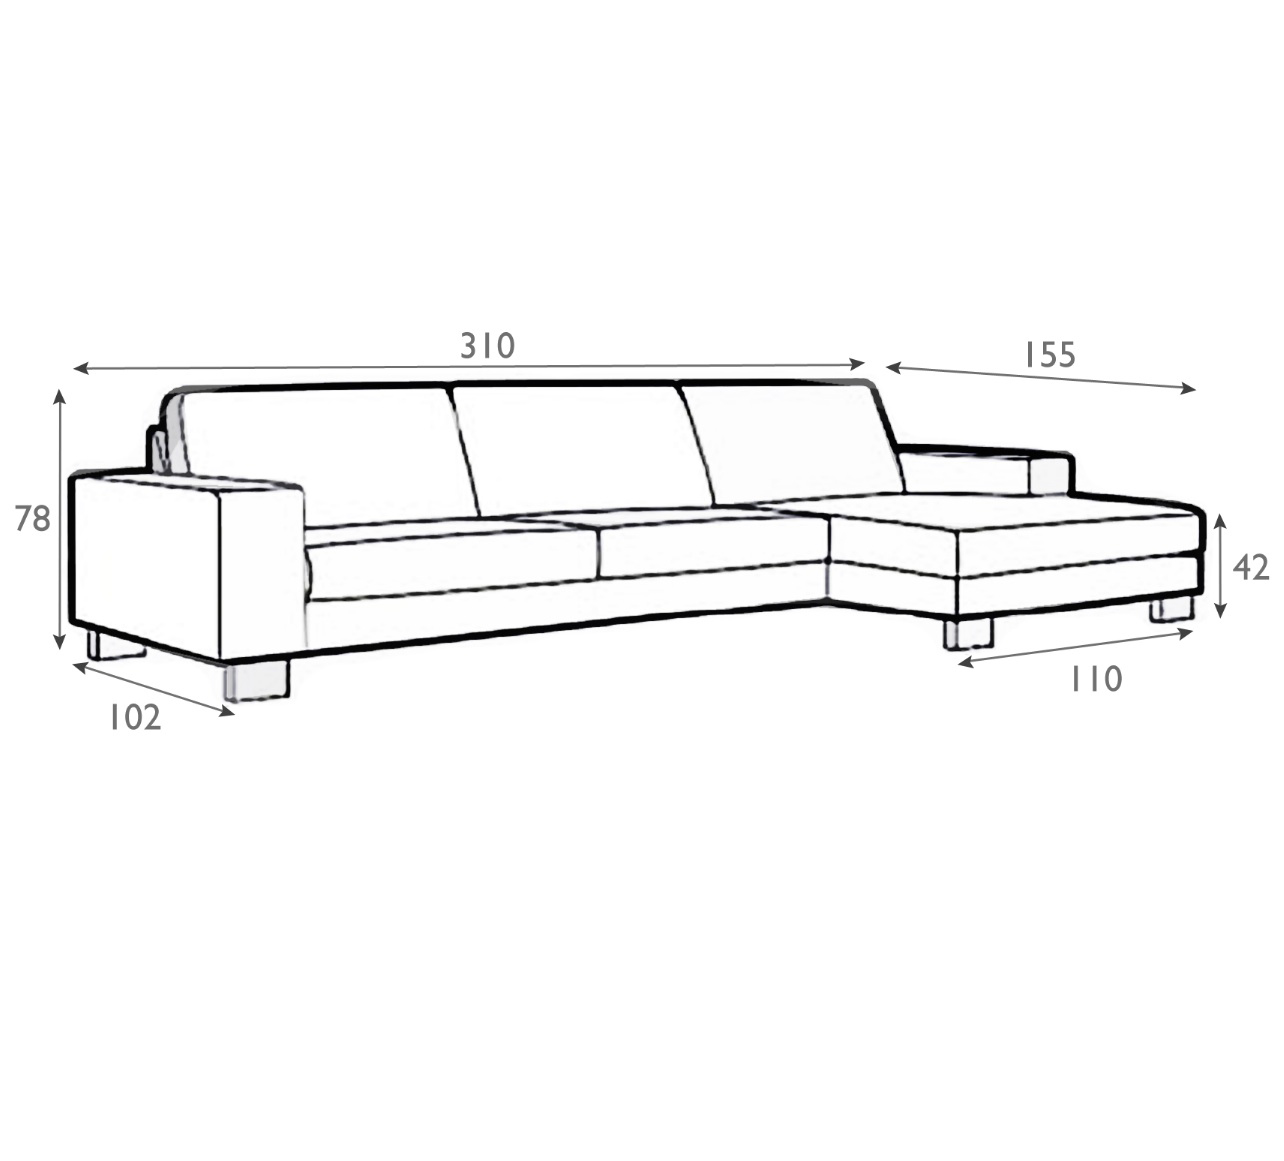 Lantana Set 2 Sofa With Chaiselongue-0